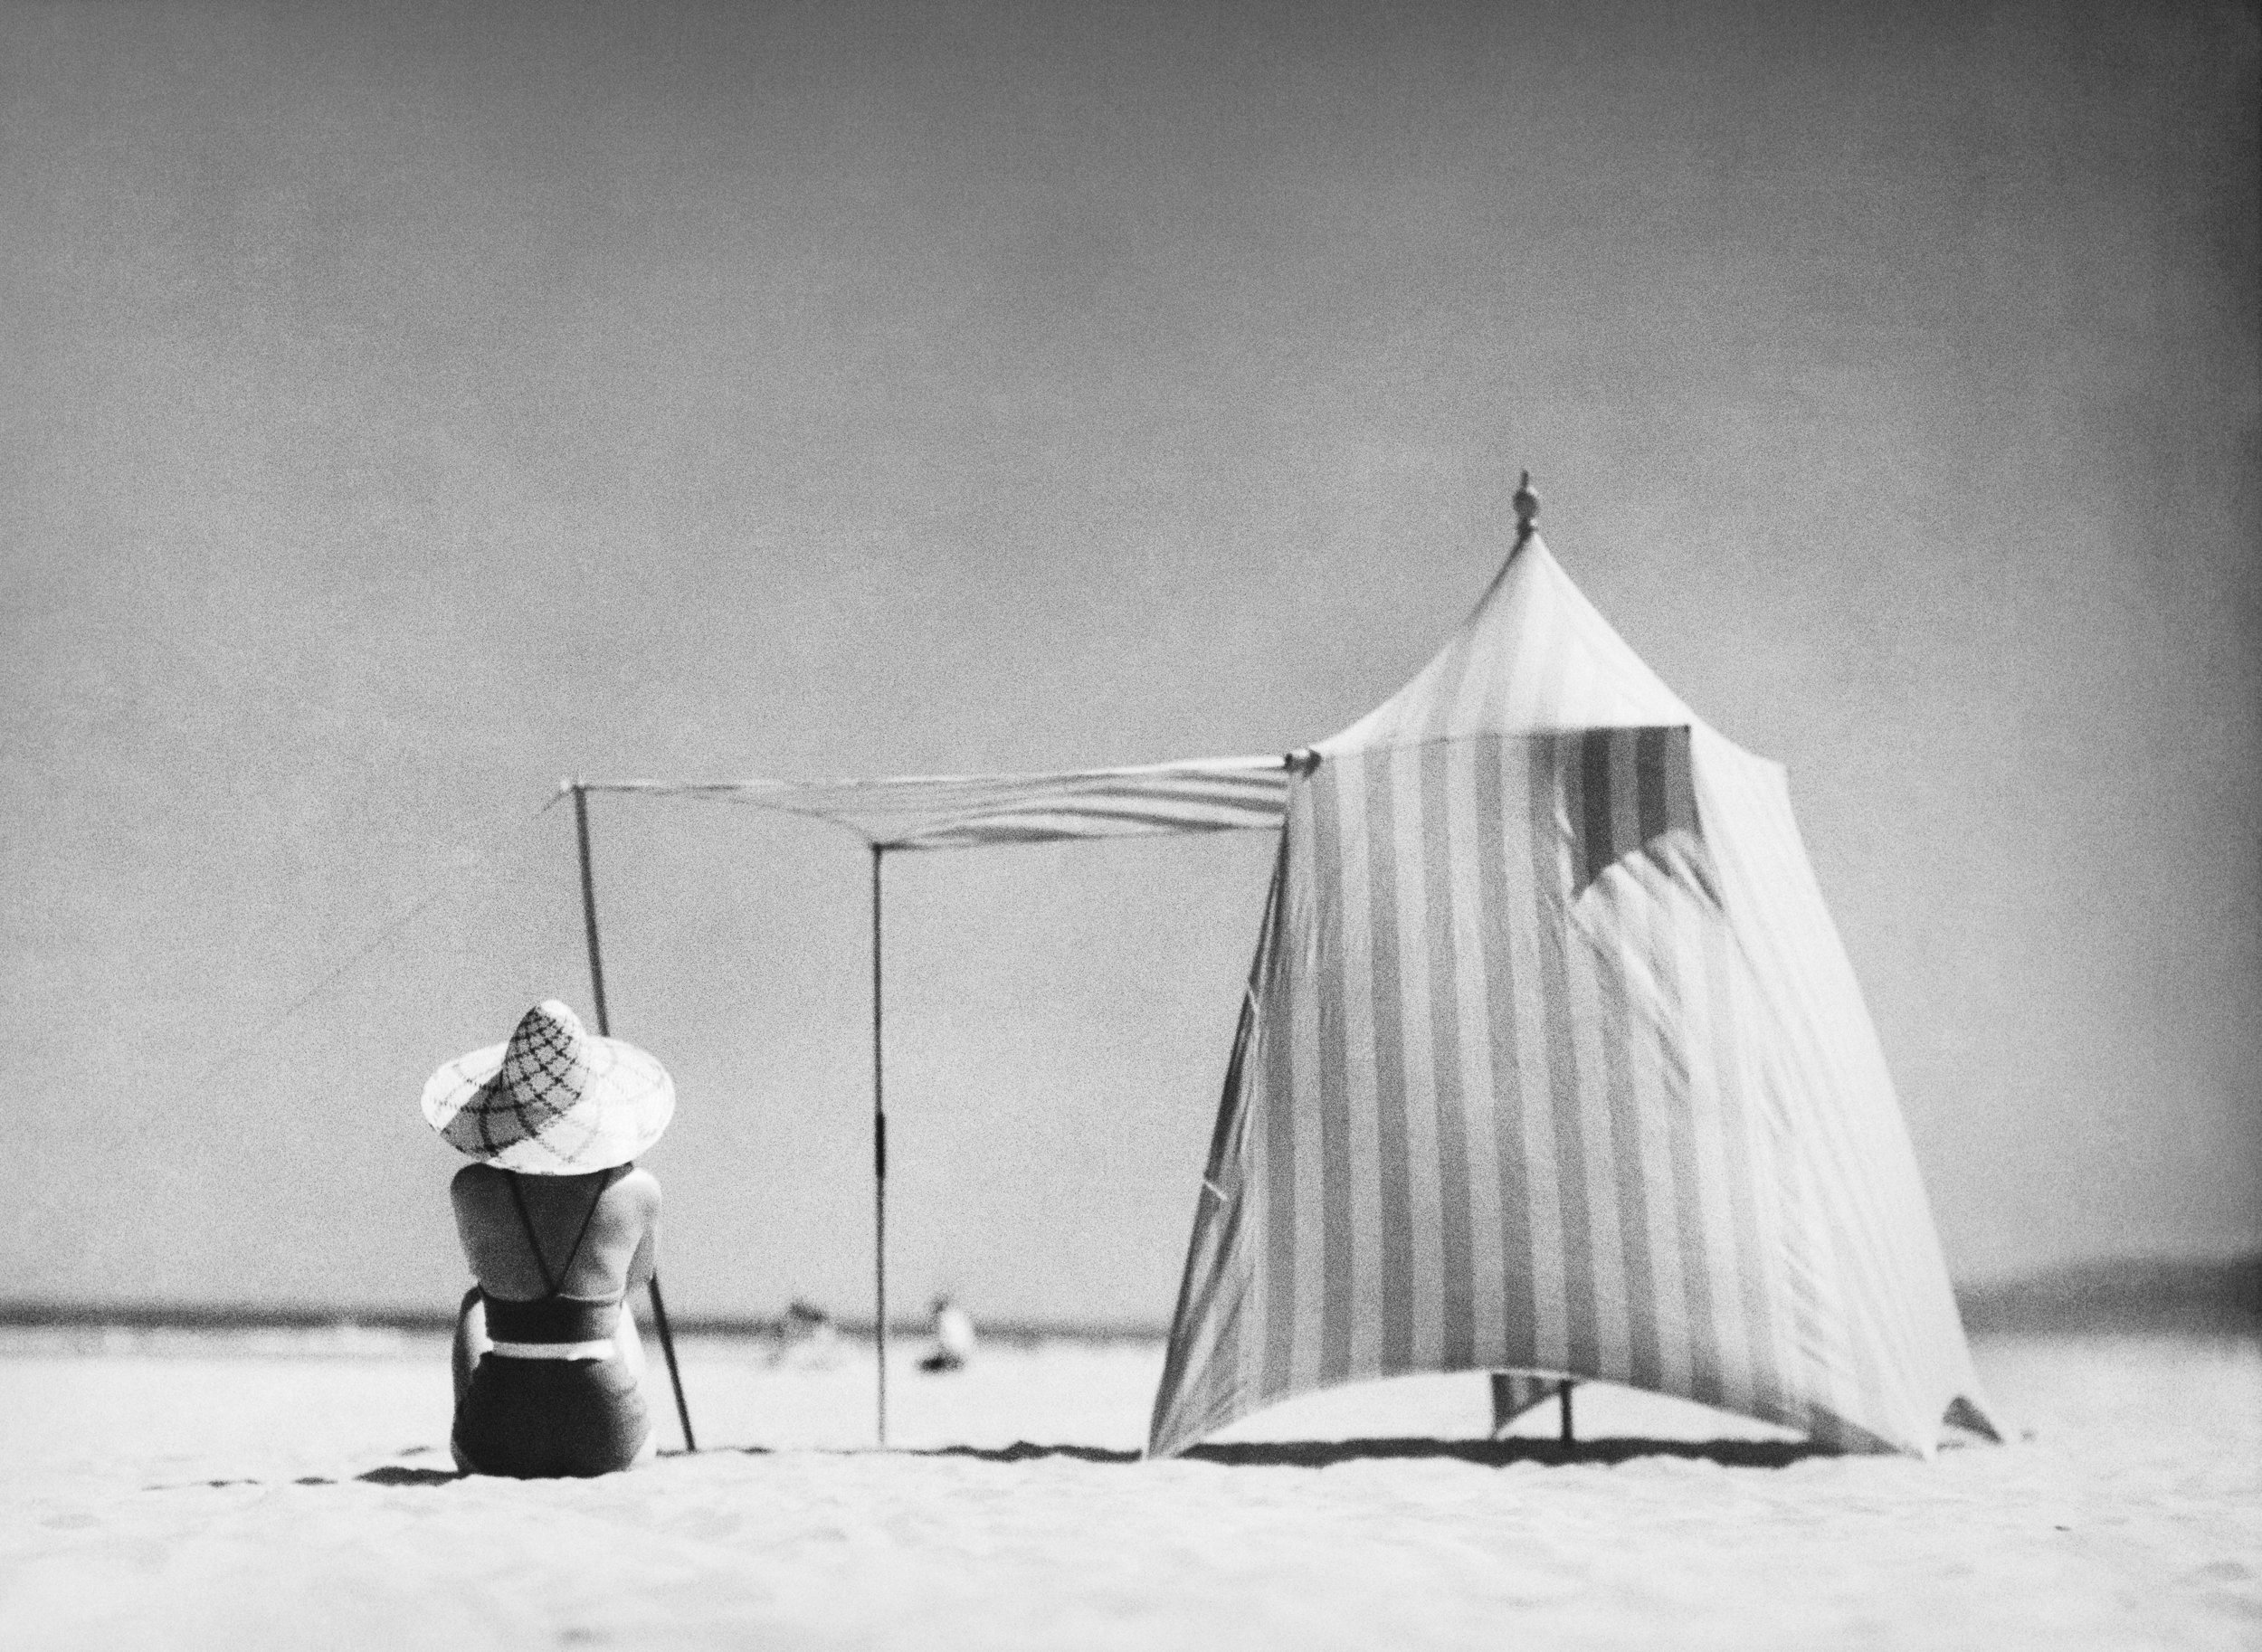 Photo by Jacques-Henri Lartigue, Hendaye, France 1934